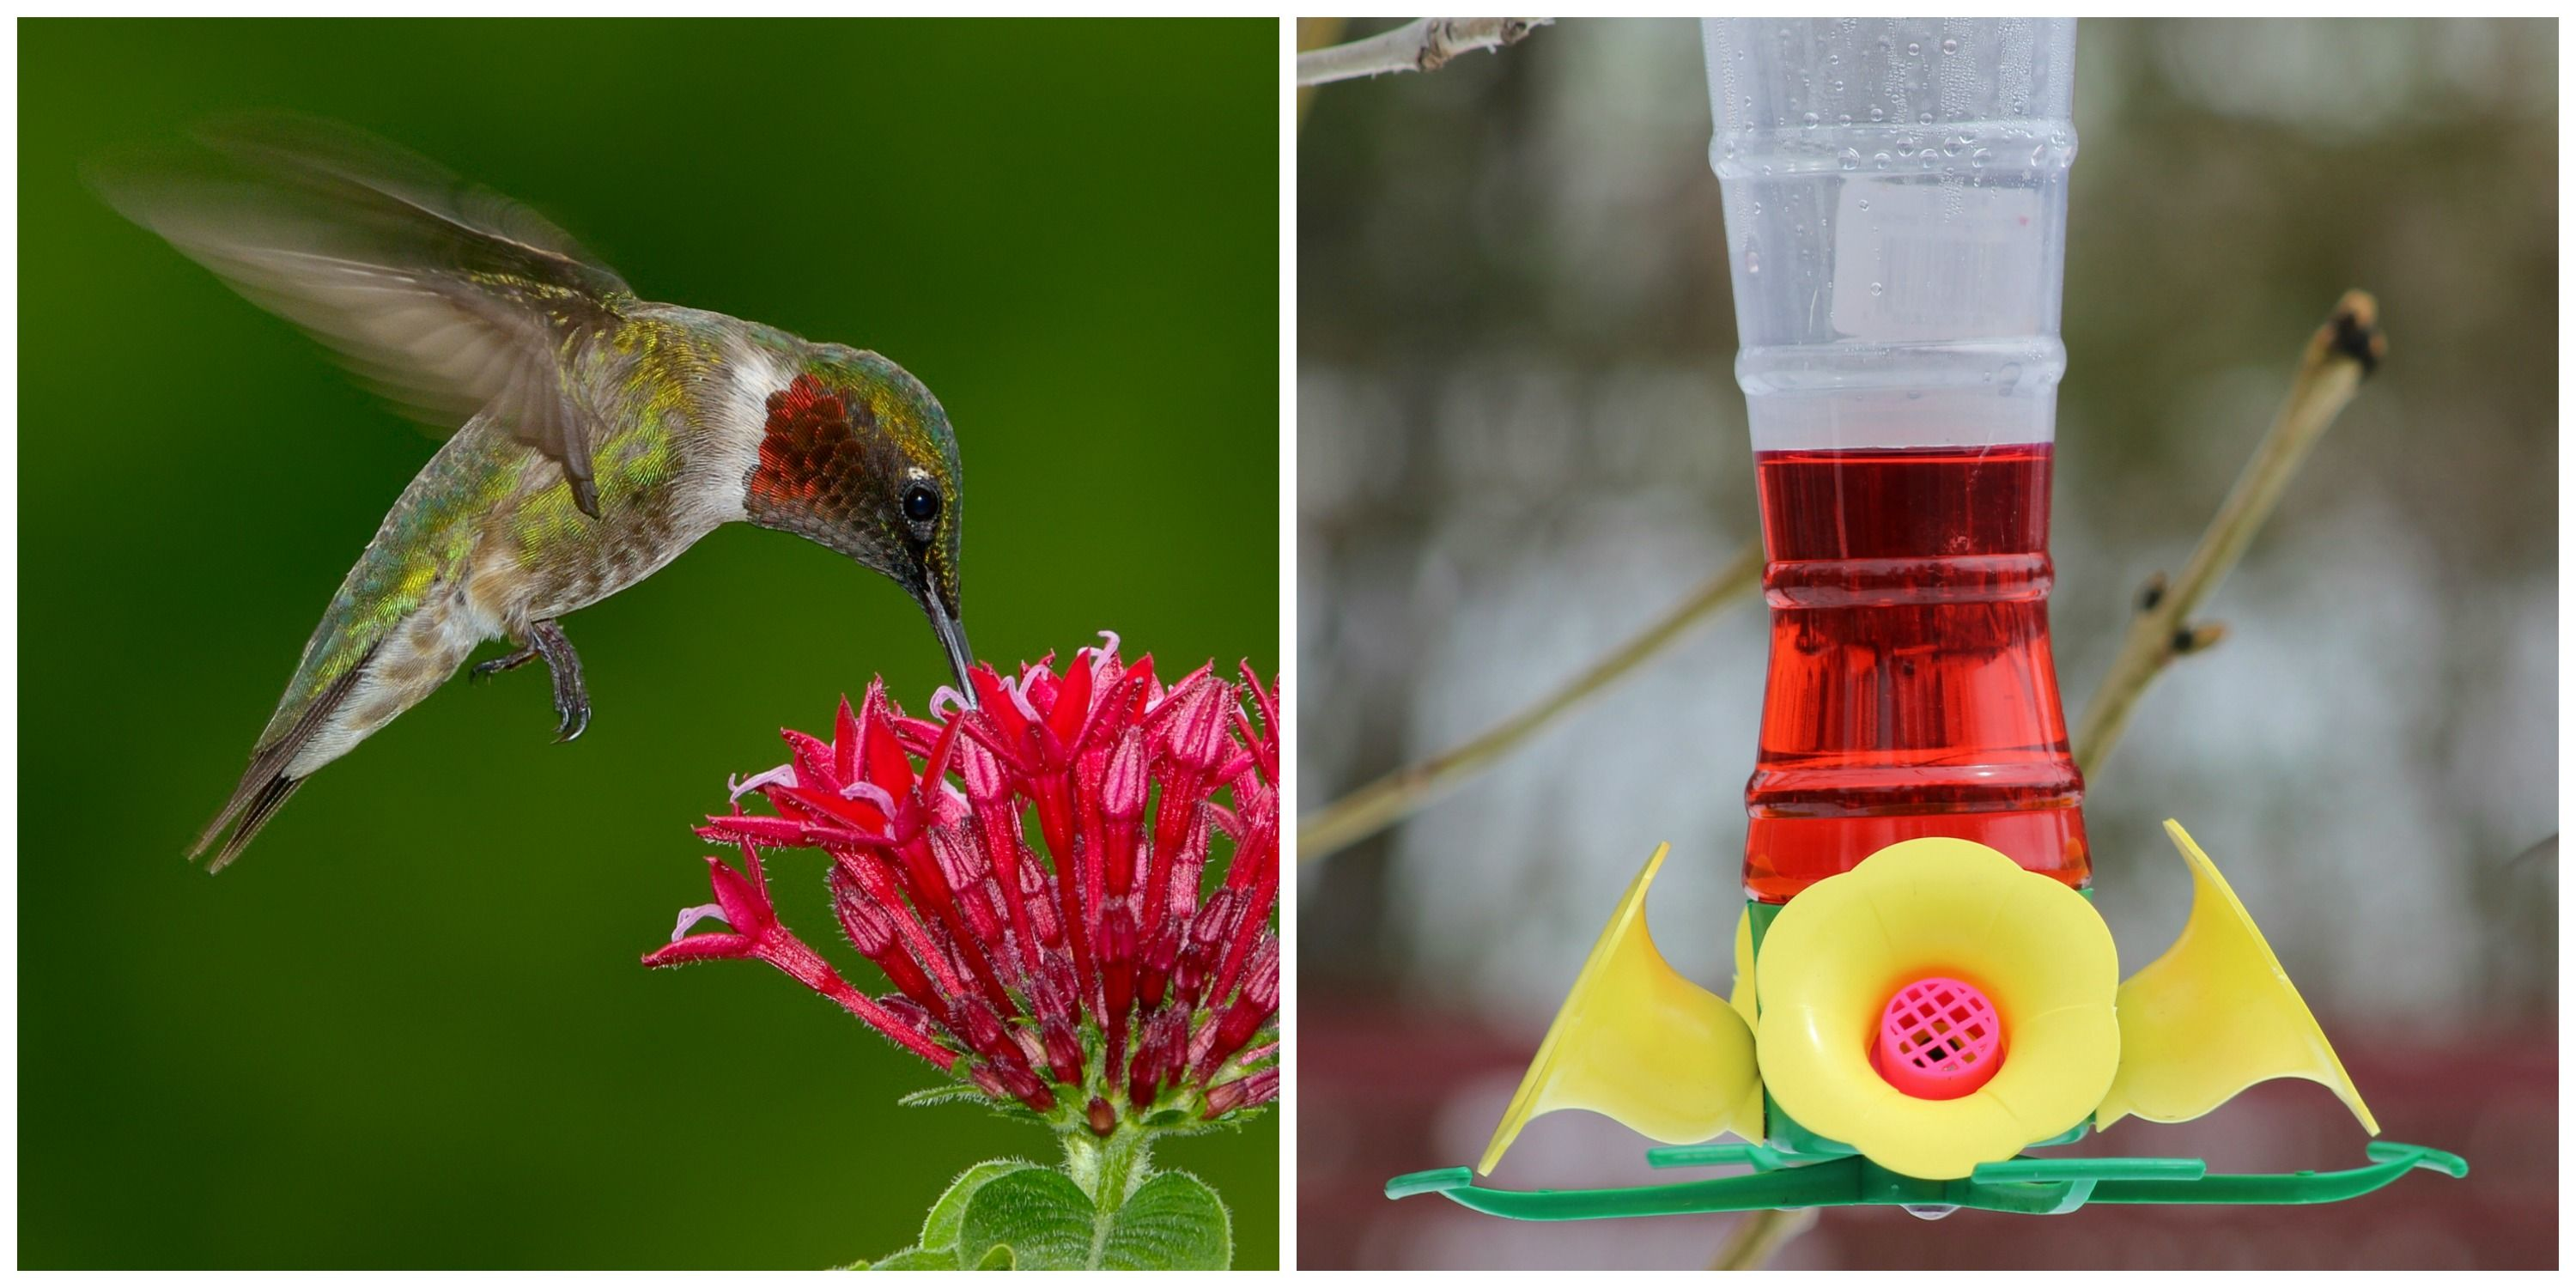 Red Dye Nectar Might Be Killing Hummingbirds - Red Dye Nectar Under ...